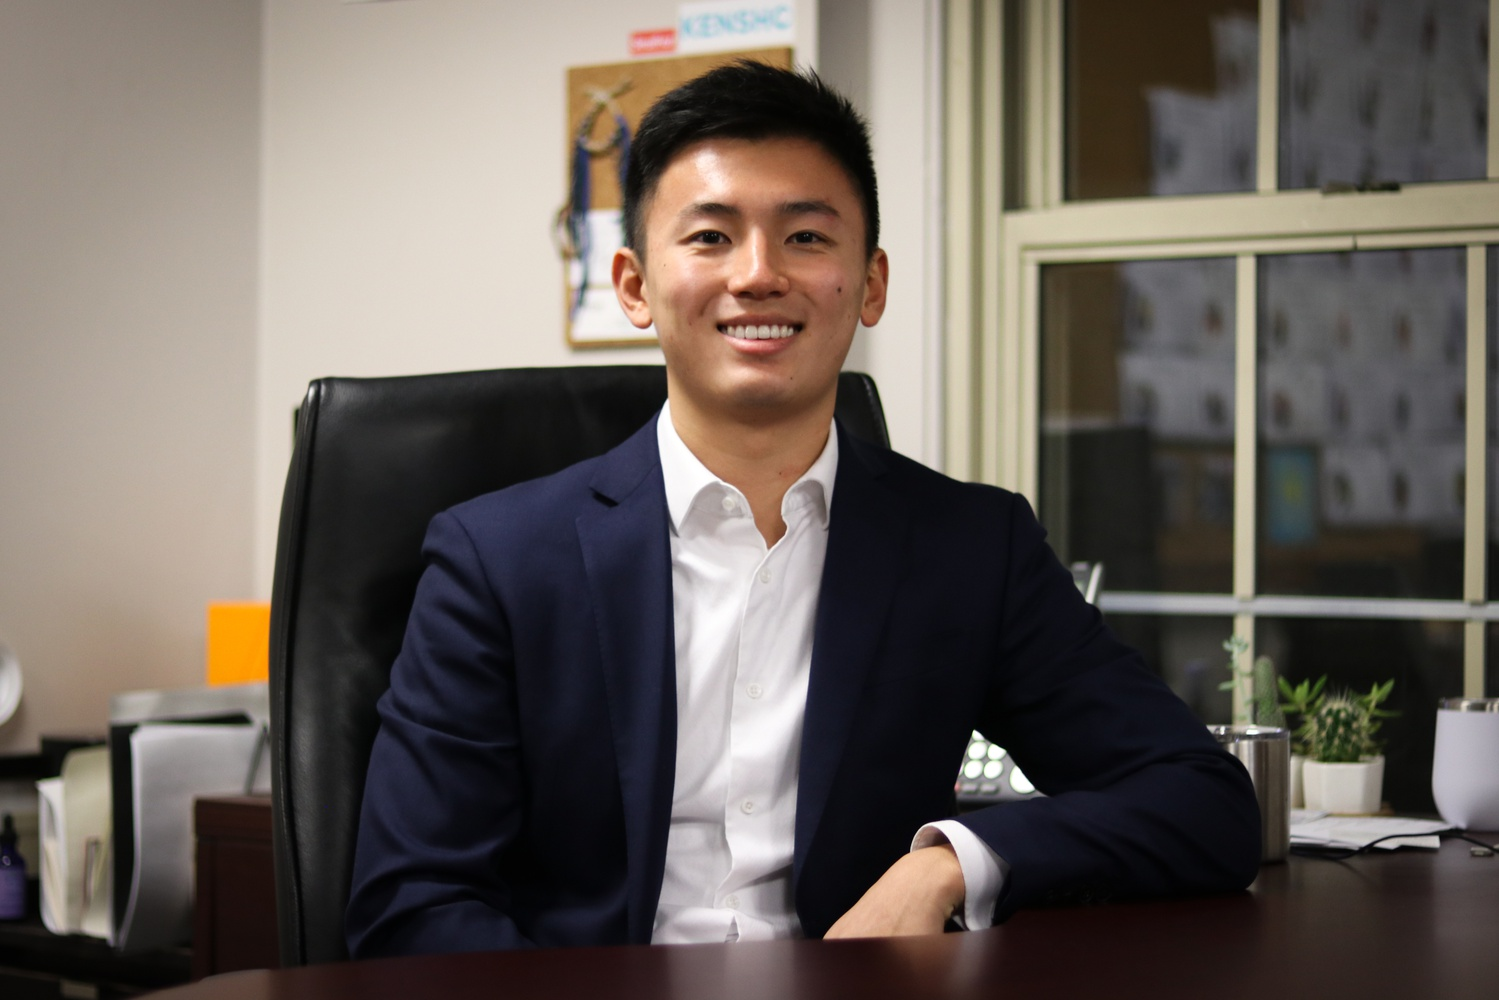 Charlie B. Zhu '20 will serve as the Business Manager of the 146th Guard.